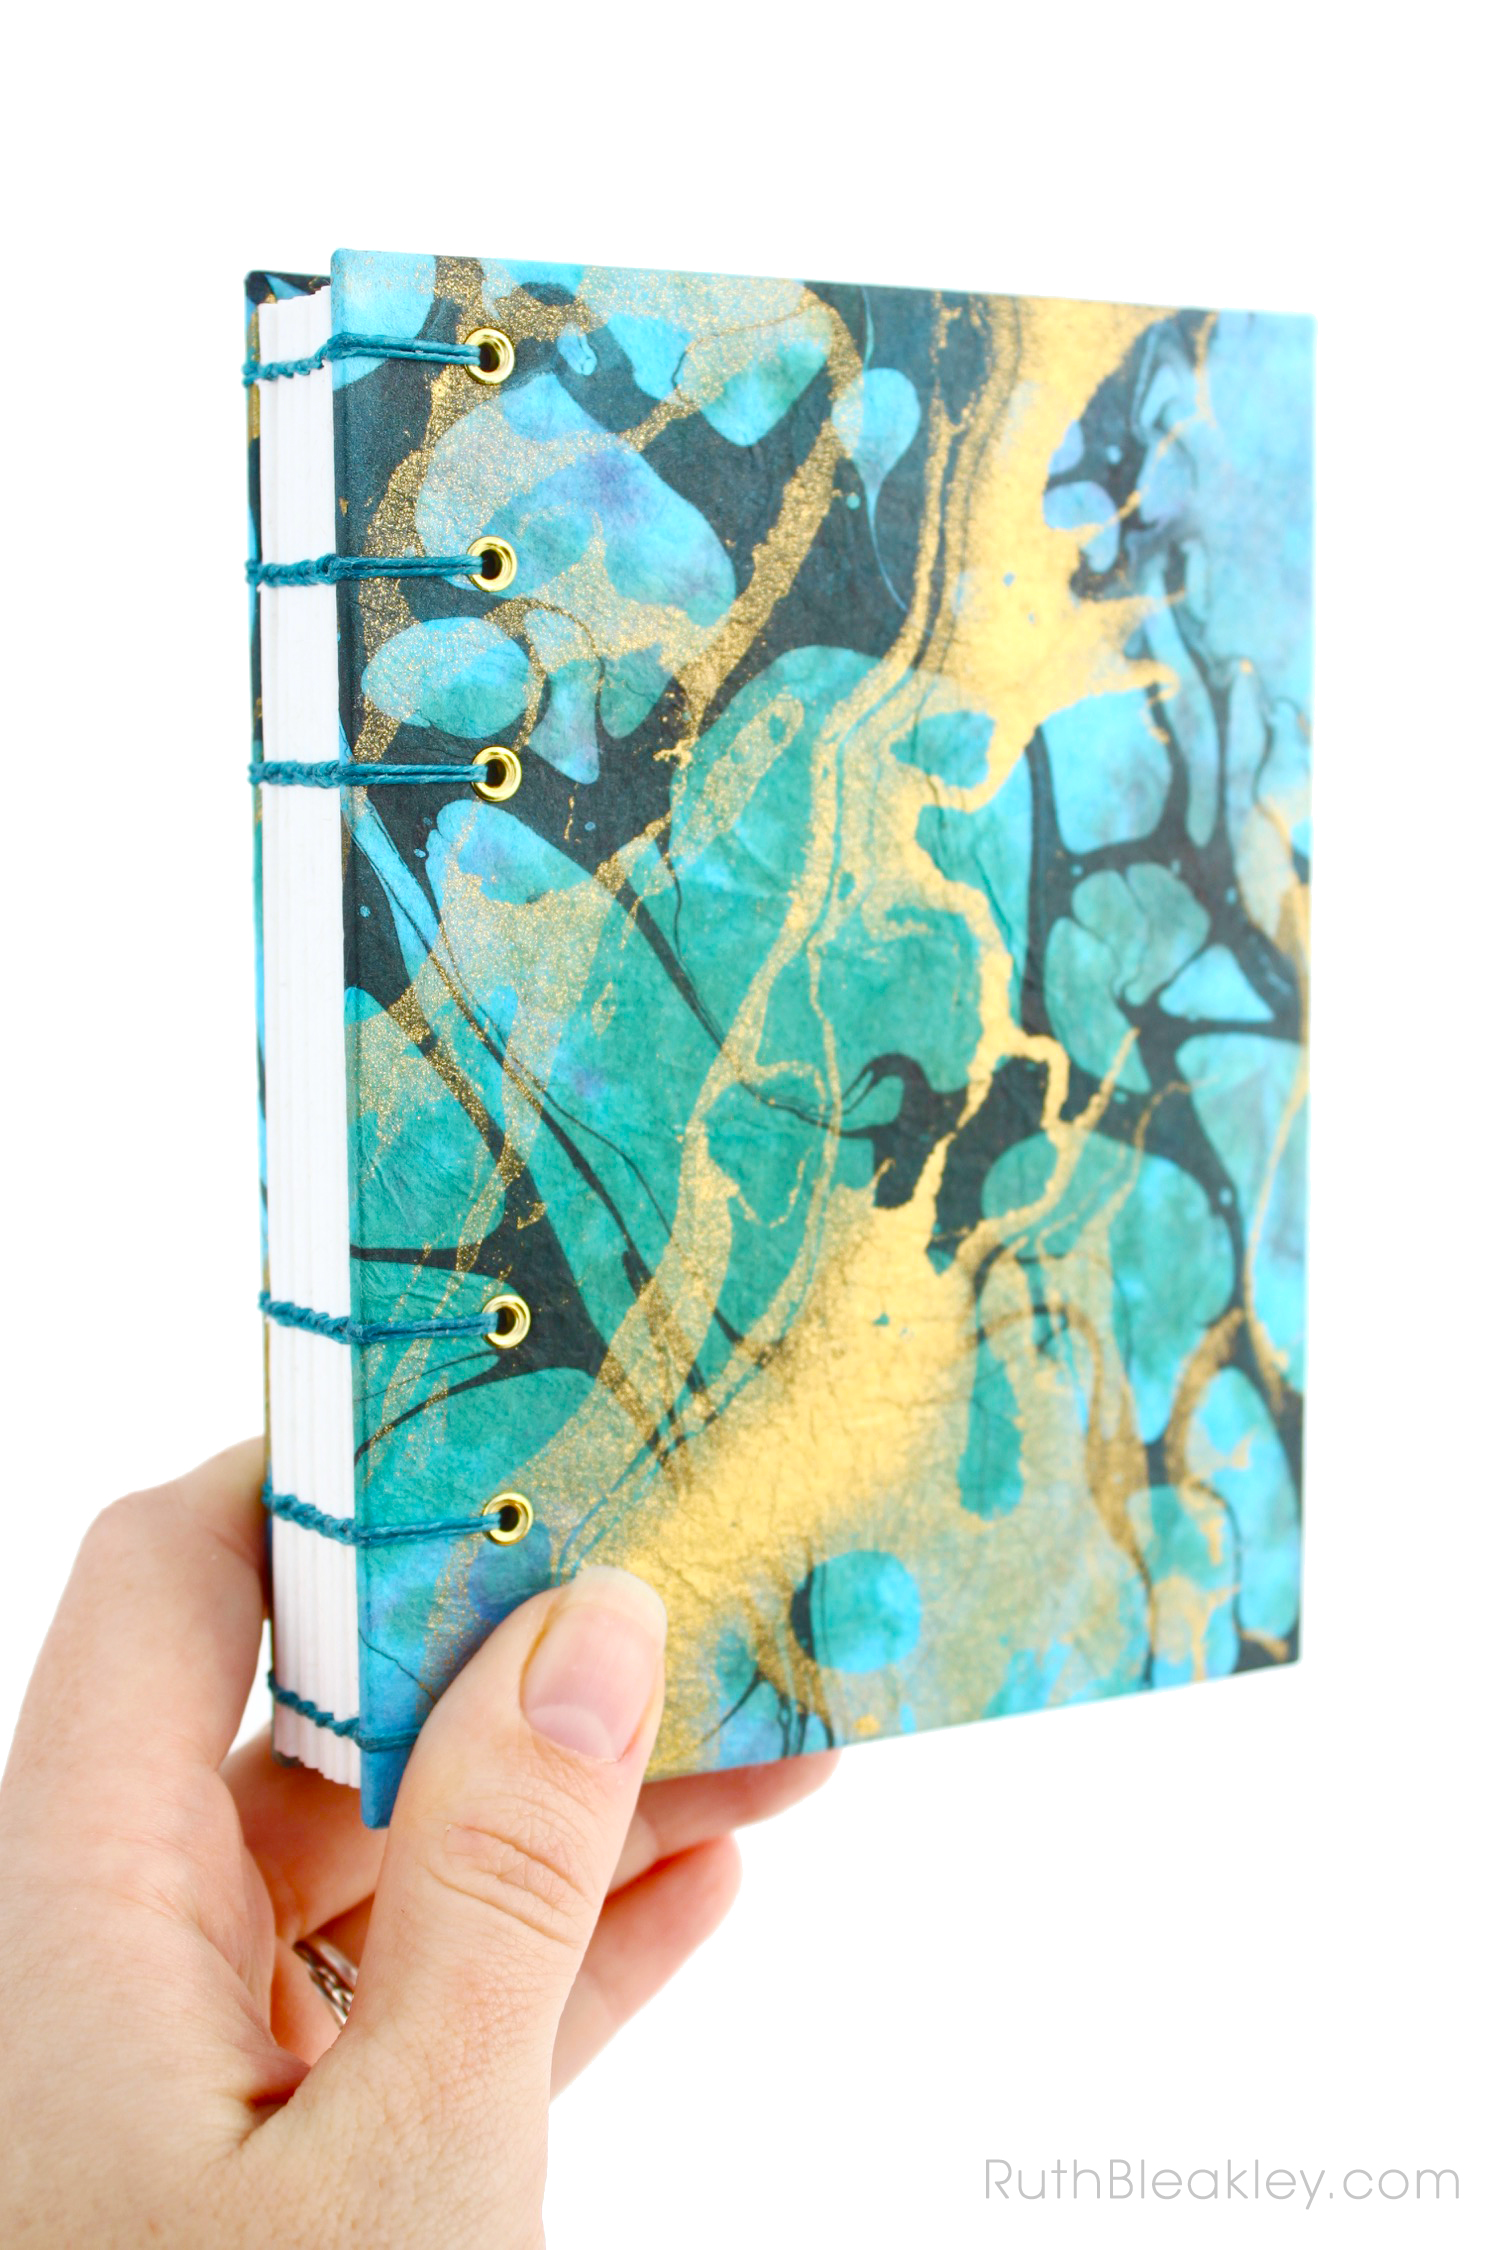 Unlined Blank Art Journal handmade by Ruth Bleakley from Marbled Paper - blue and gold